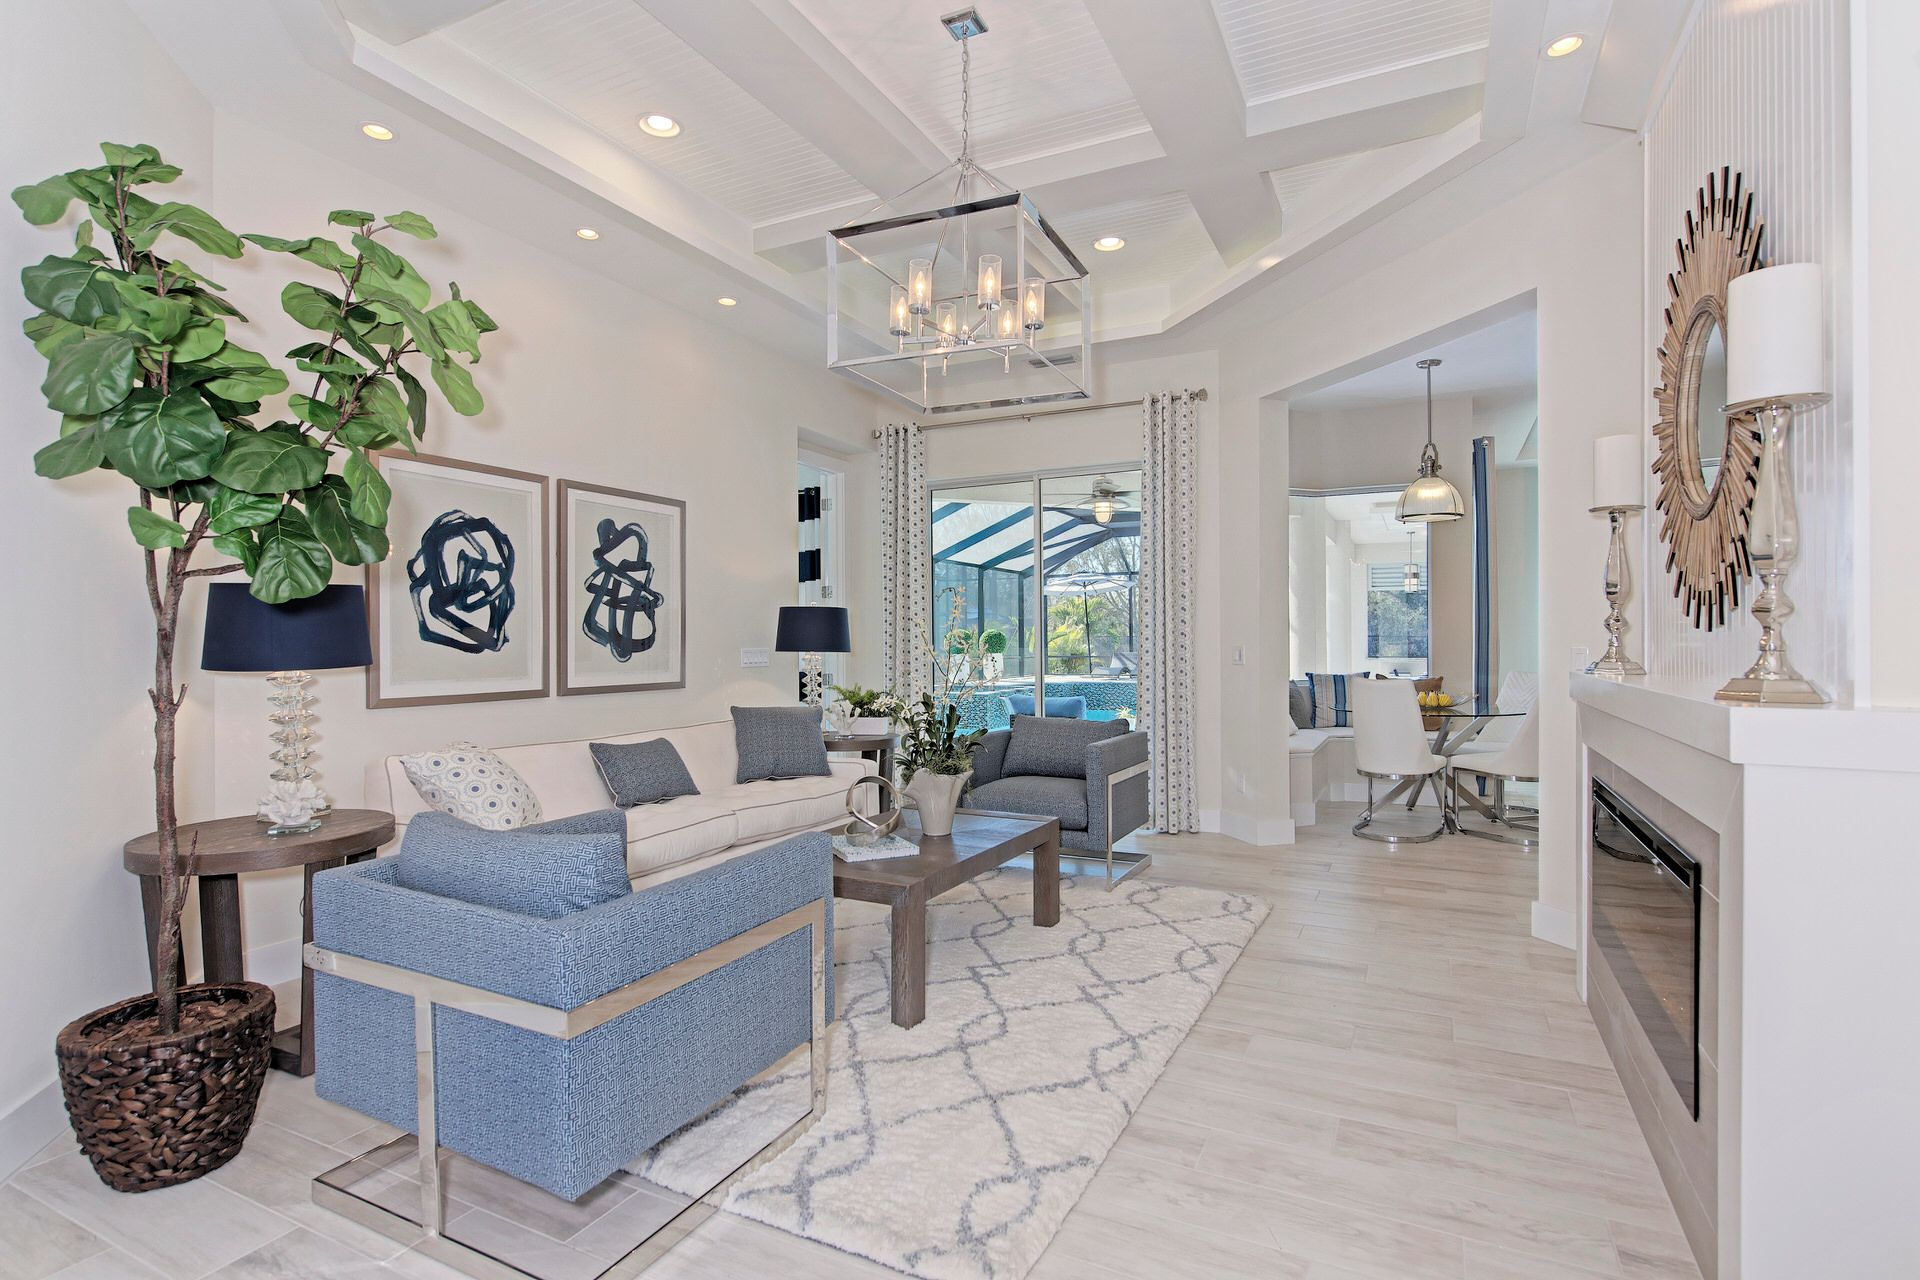 'Waverley' by Medallion Home in Sarasota-Bradenton